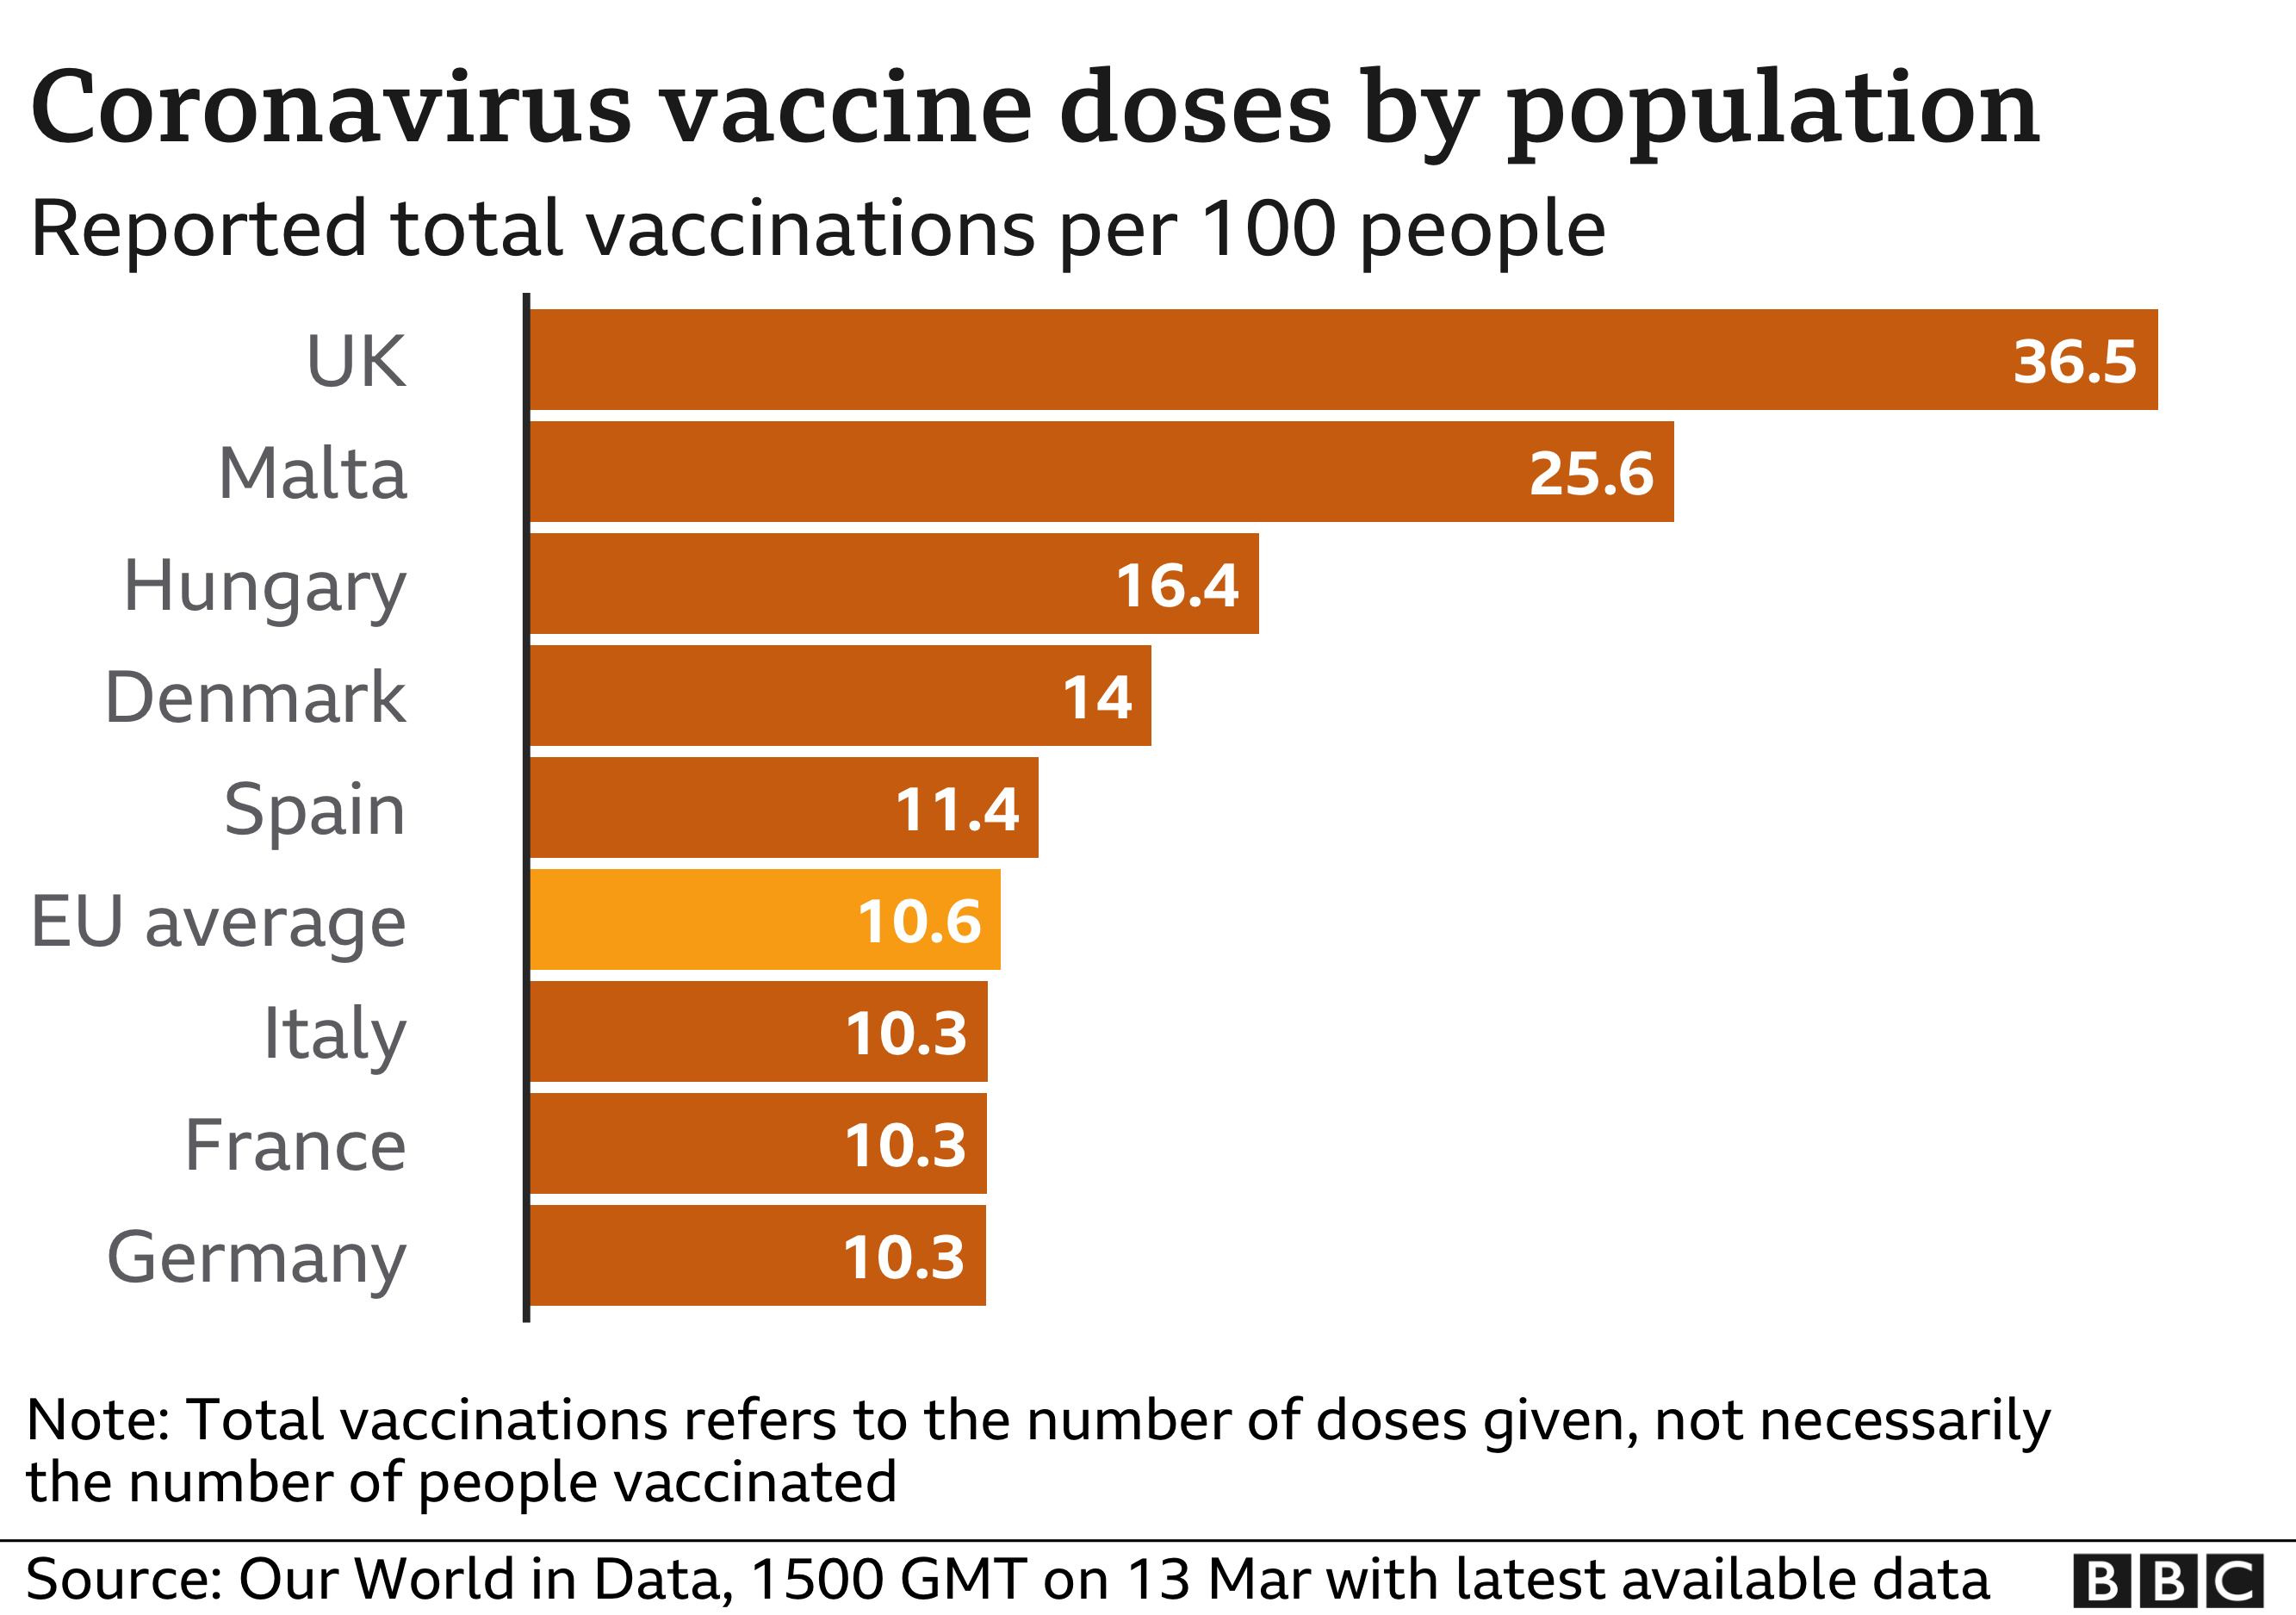 Coronavirus doses by population